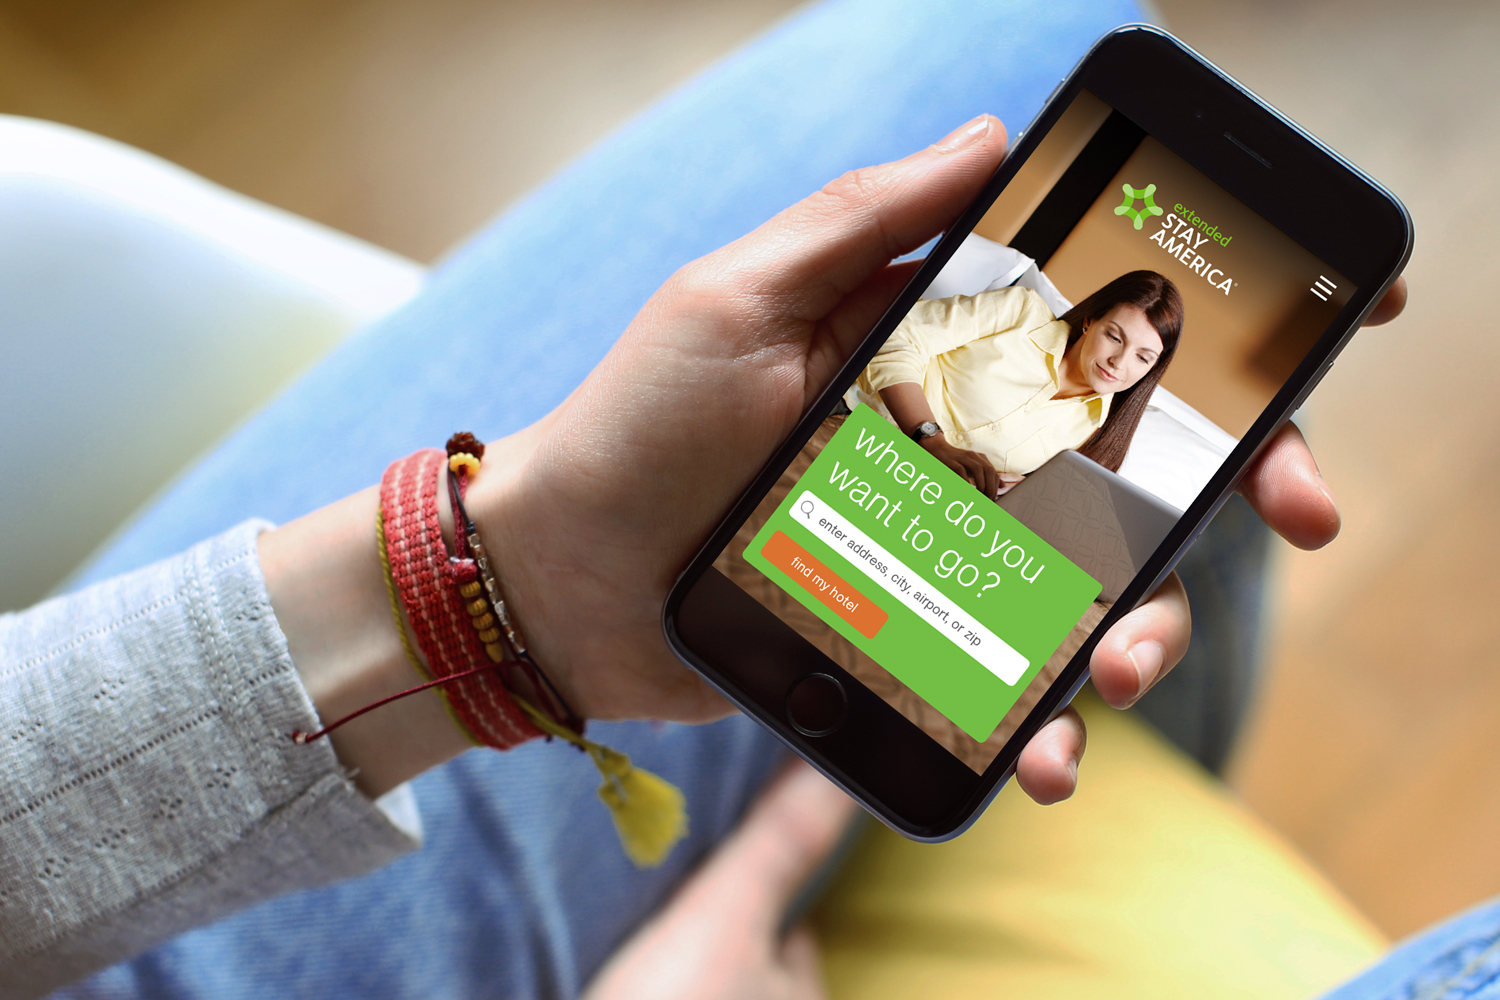 Extended Stay America mobile app, home screen